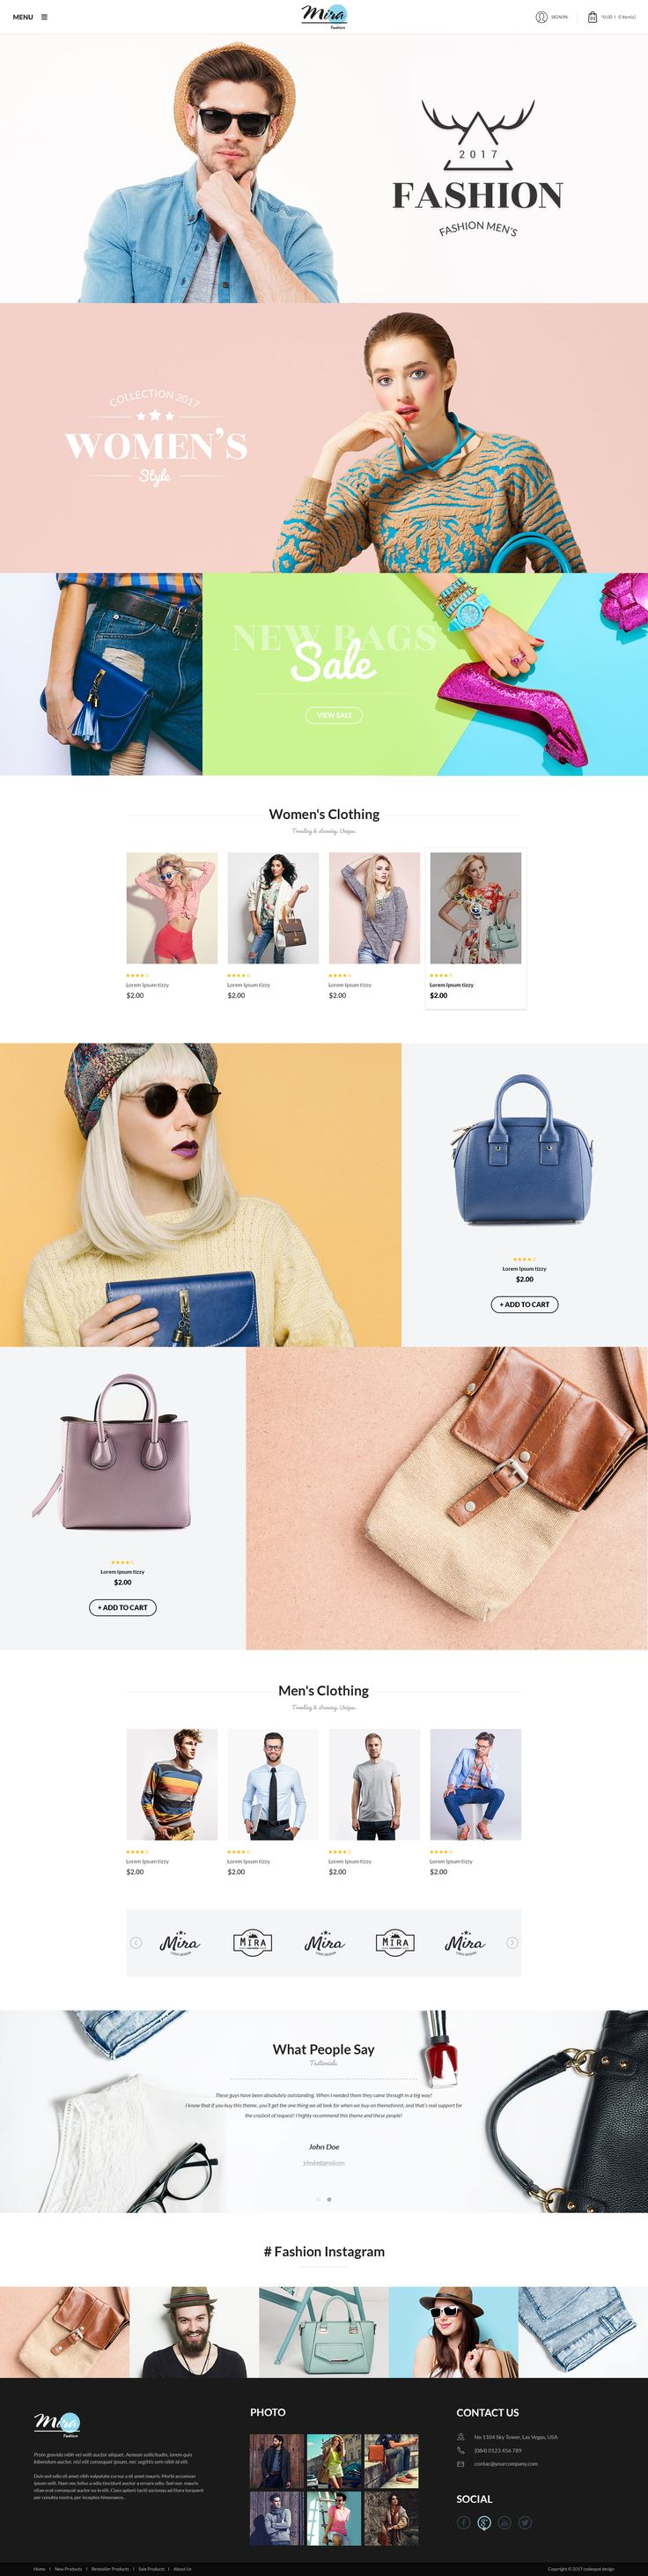 Mira - Creative eCommerce PSD Templates: Fashion, Cosmetic, Plant, Pottery, Pet Shop #plant #pottery #shop • Download ➝ https://themeforest.net/item/mira-creative-ecommerce-psd-templates-fashion-cosmetic-plant-pottery-pet-shop/20280683?ref=pxcr